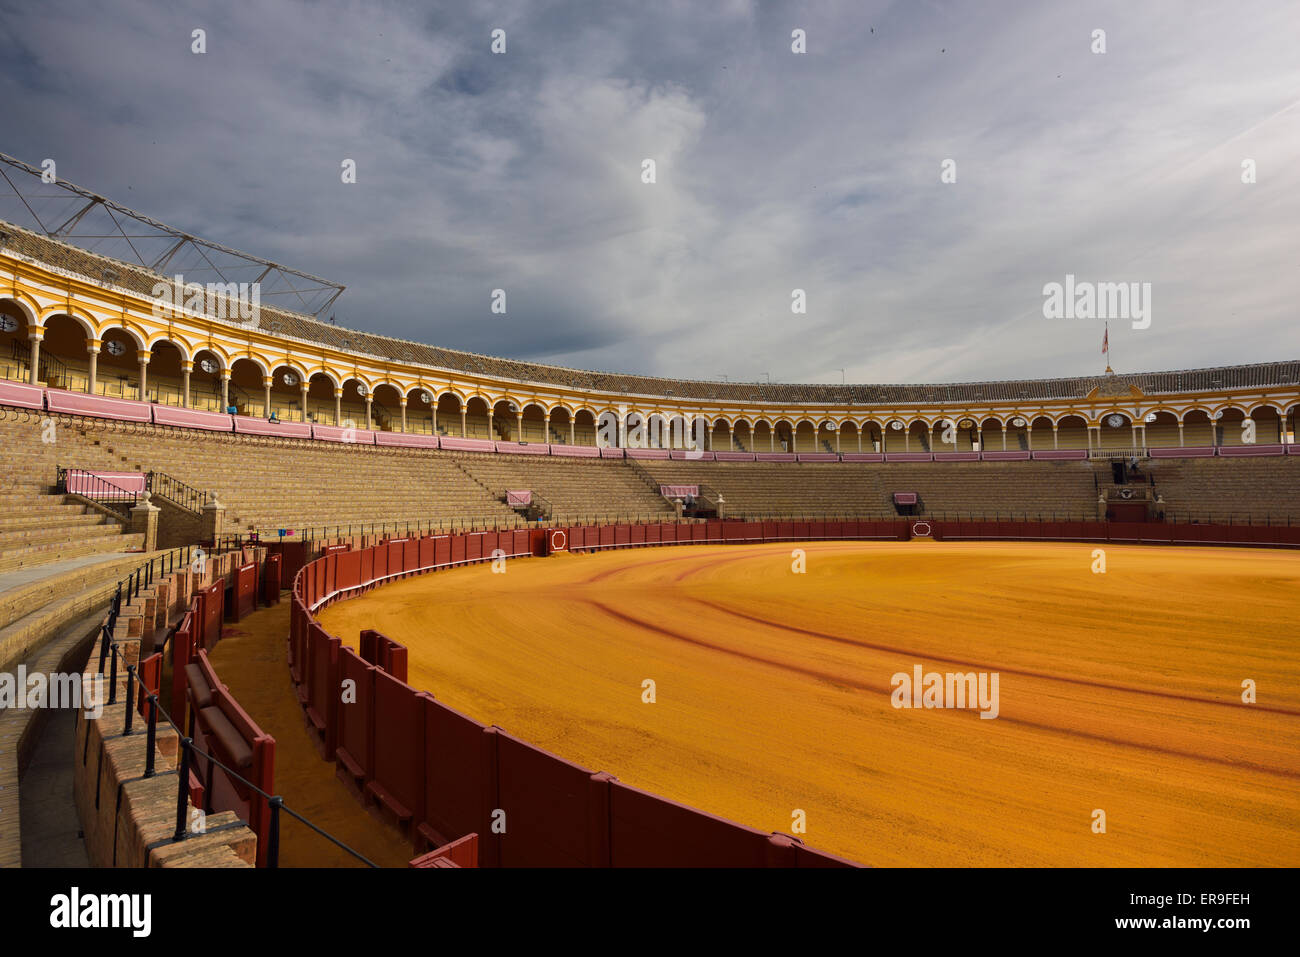 Golden sand and empty stands at Seville bullfighting ring - Stock Image